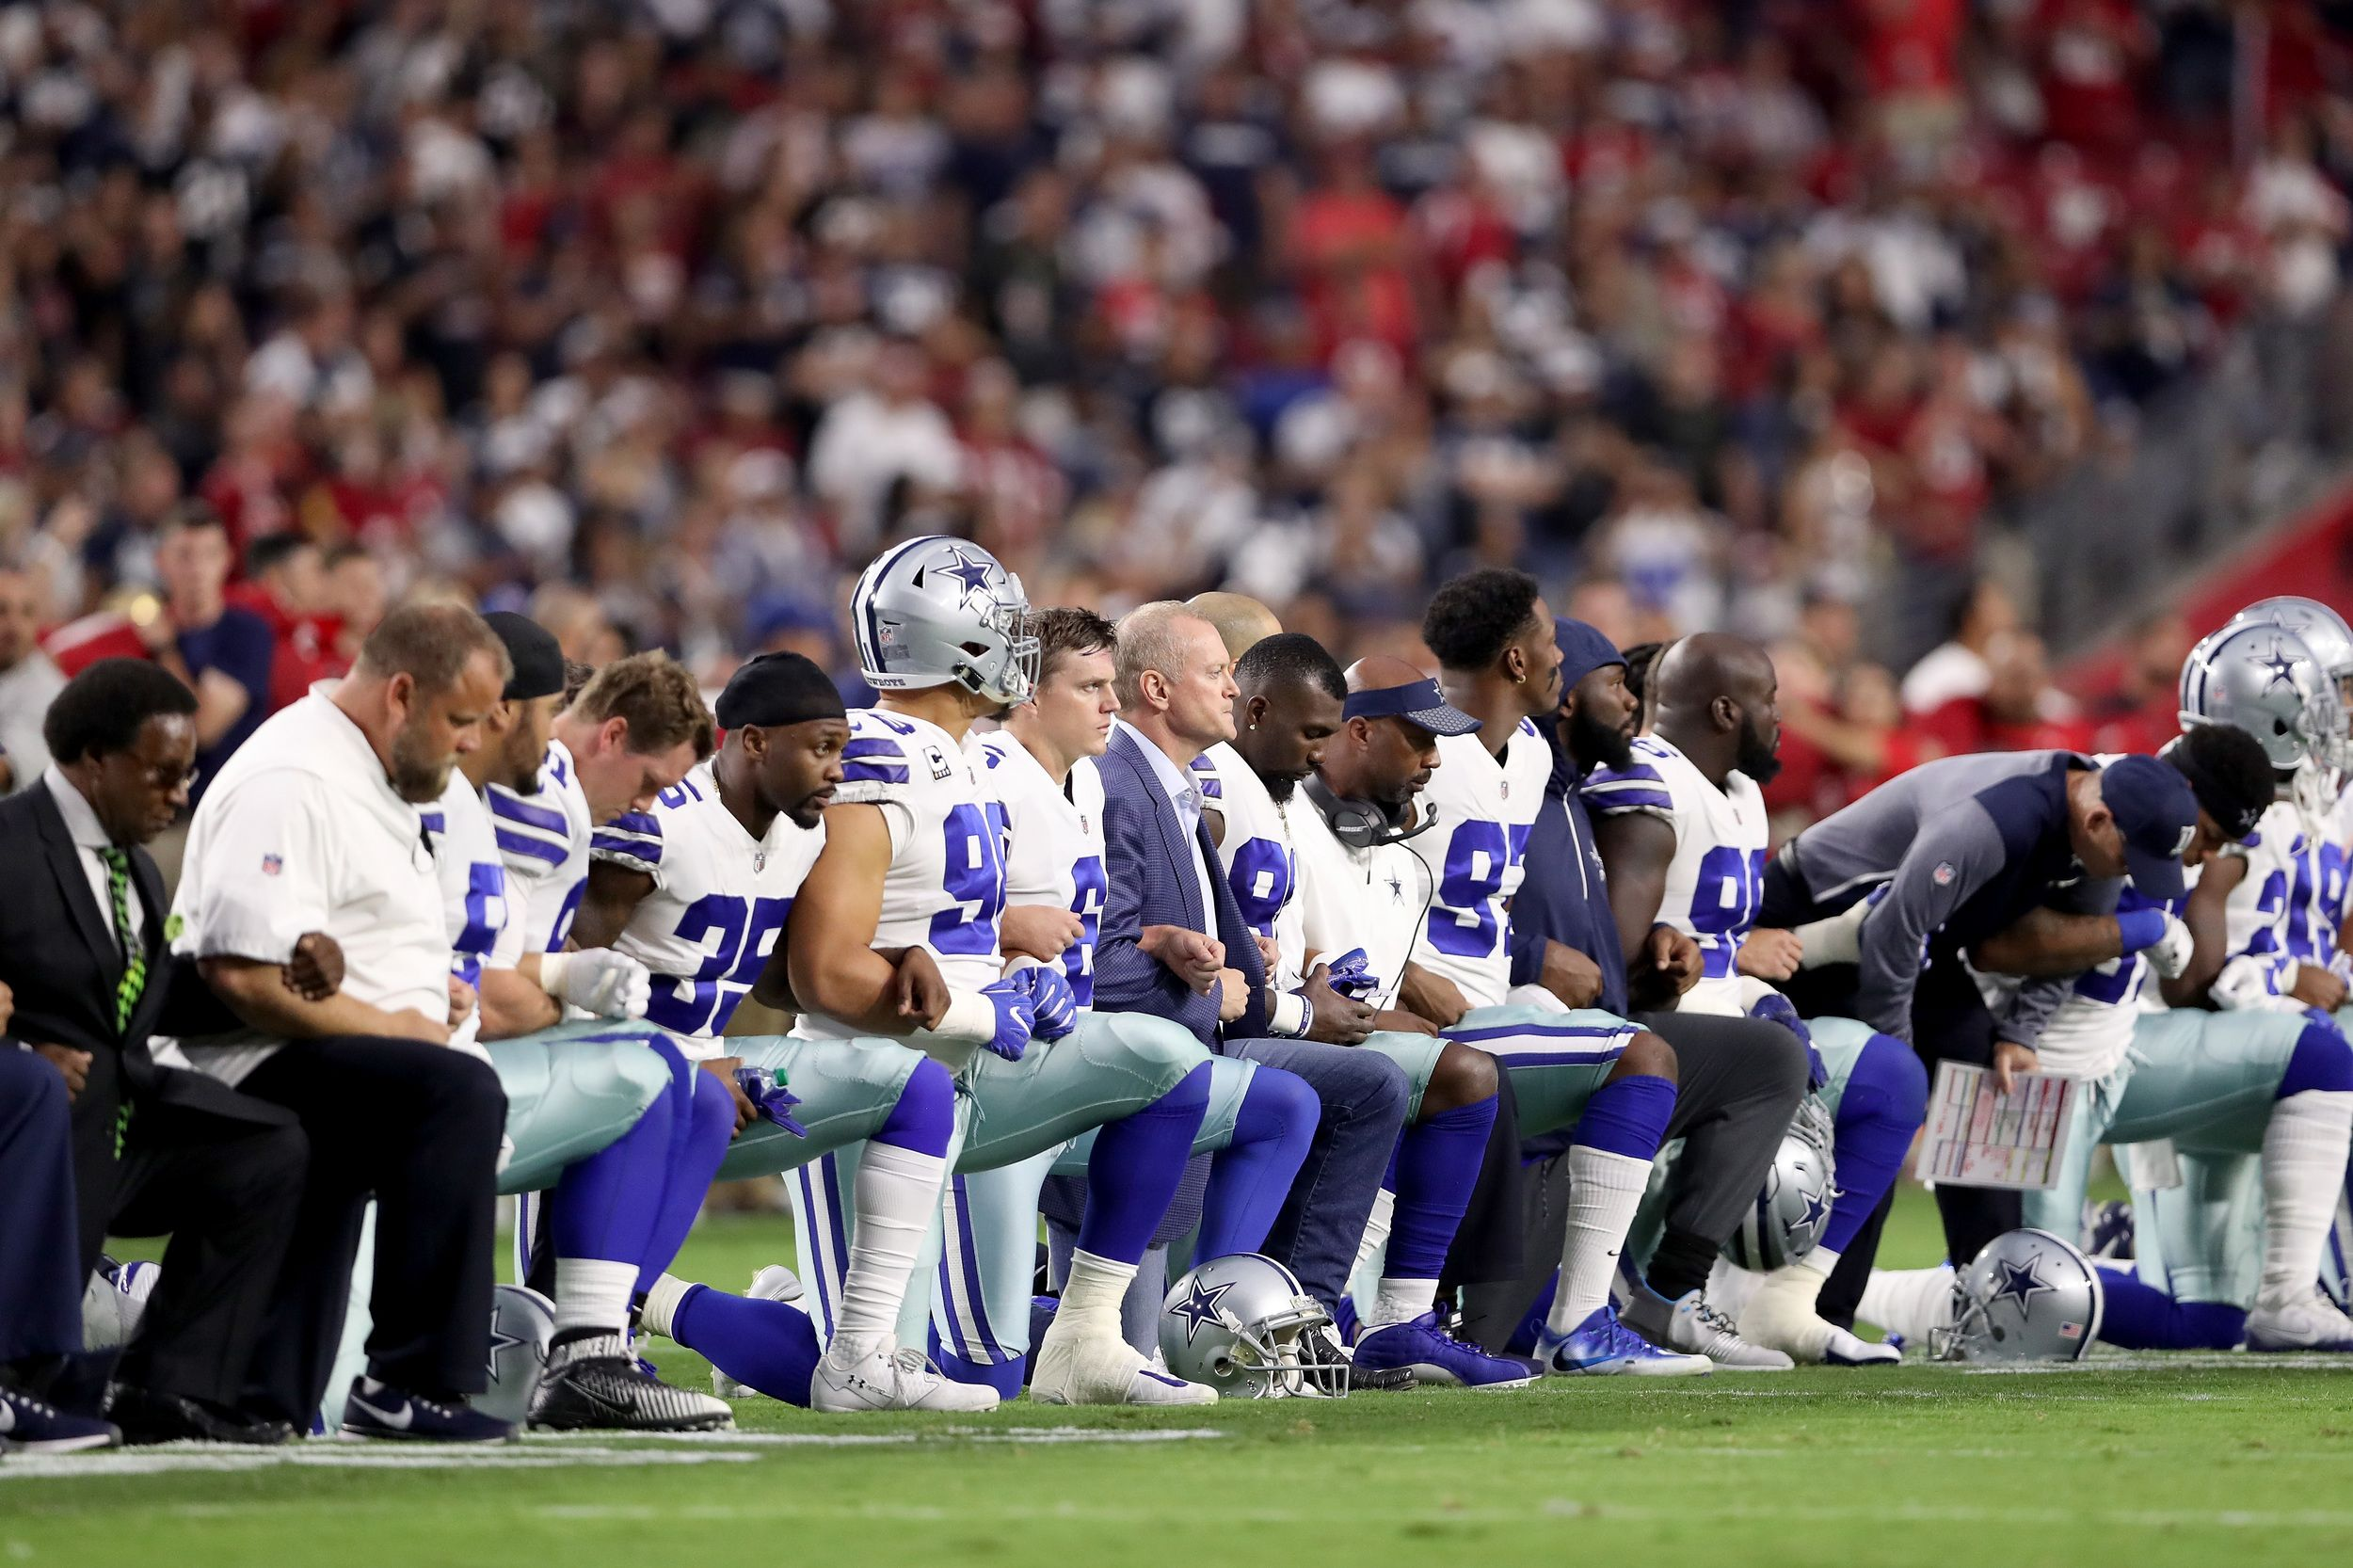 Dallas Cowboys And Owner Jerry Jones Kneel Prior To National Anthem Nfl Fans Cowboys Players Dallas Cowboys Players